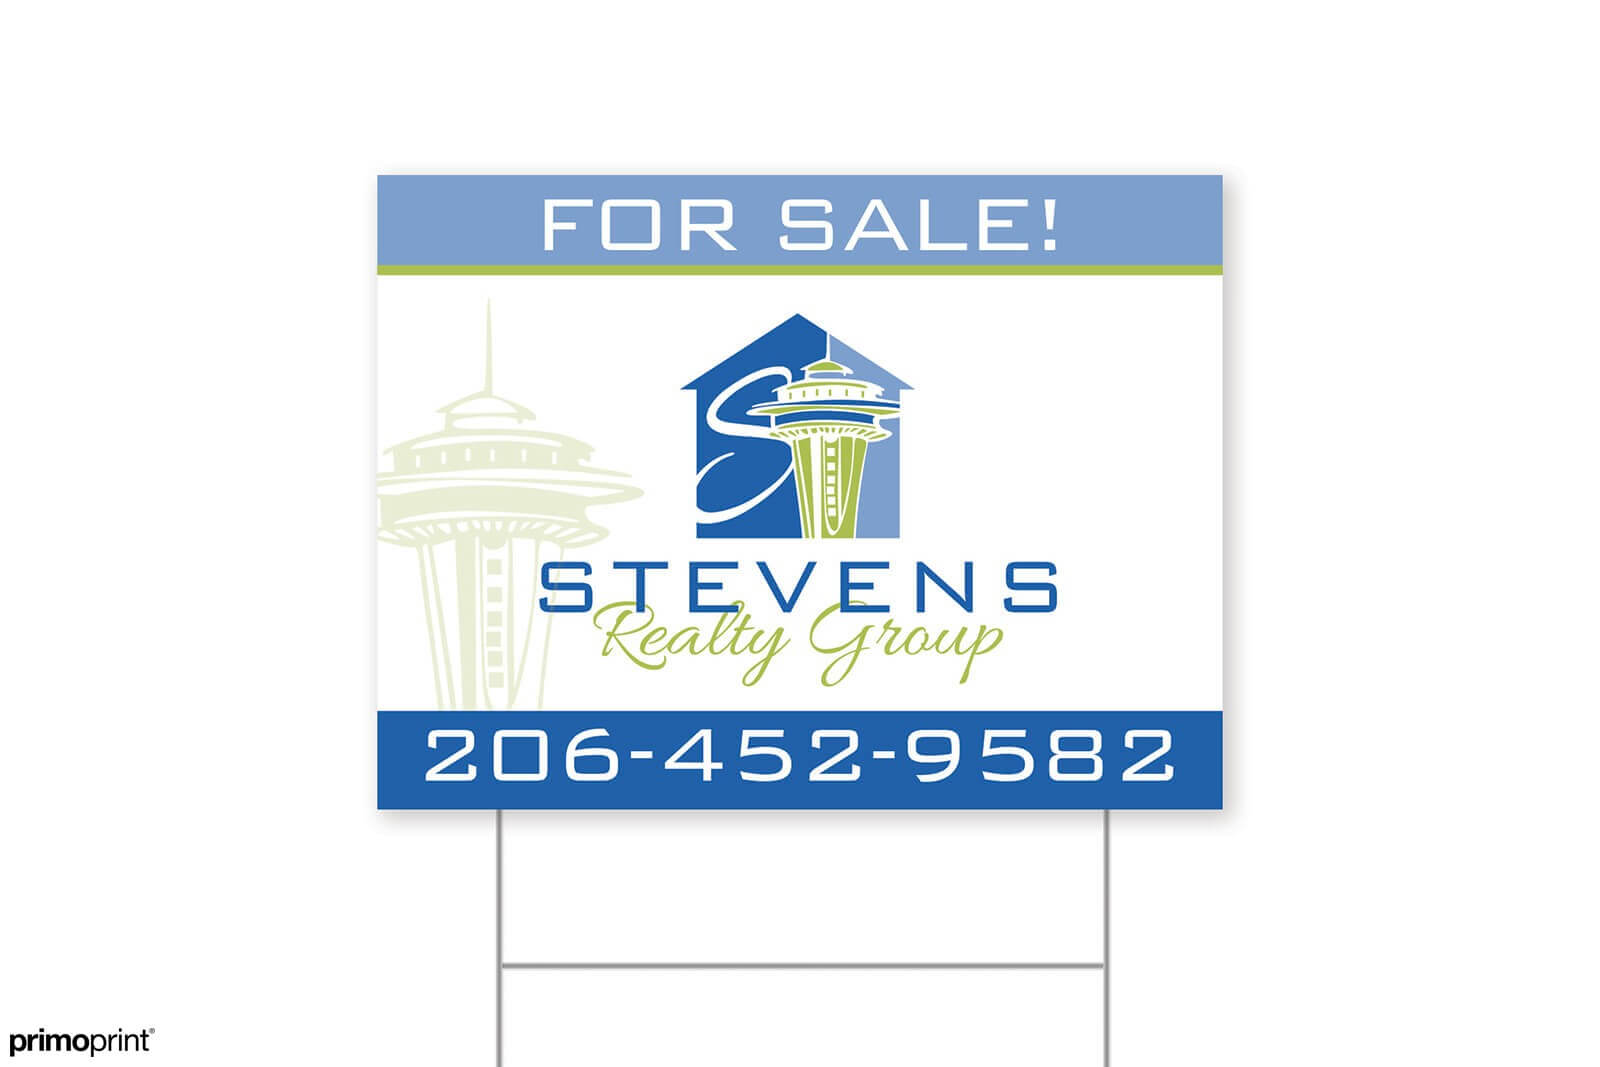 10mm coroplast realtor yard sign designed by Primoprint.